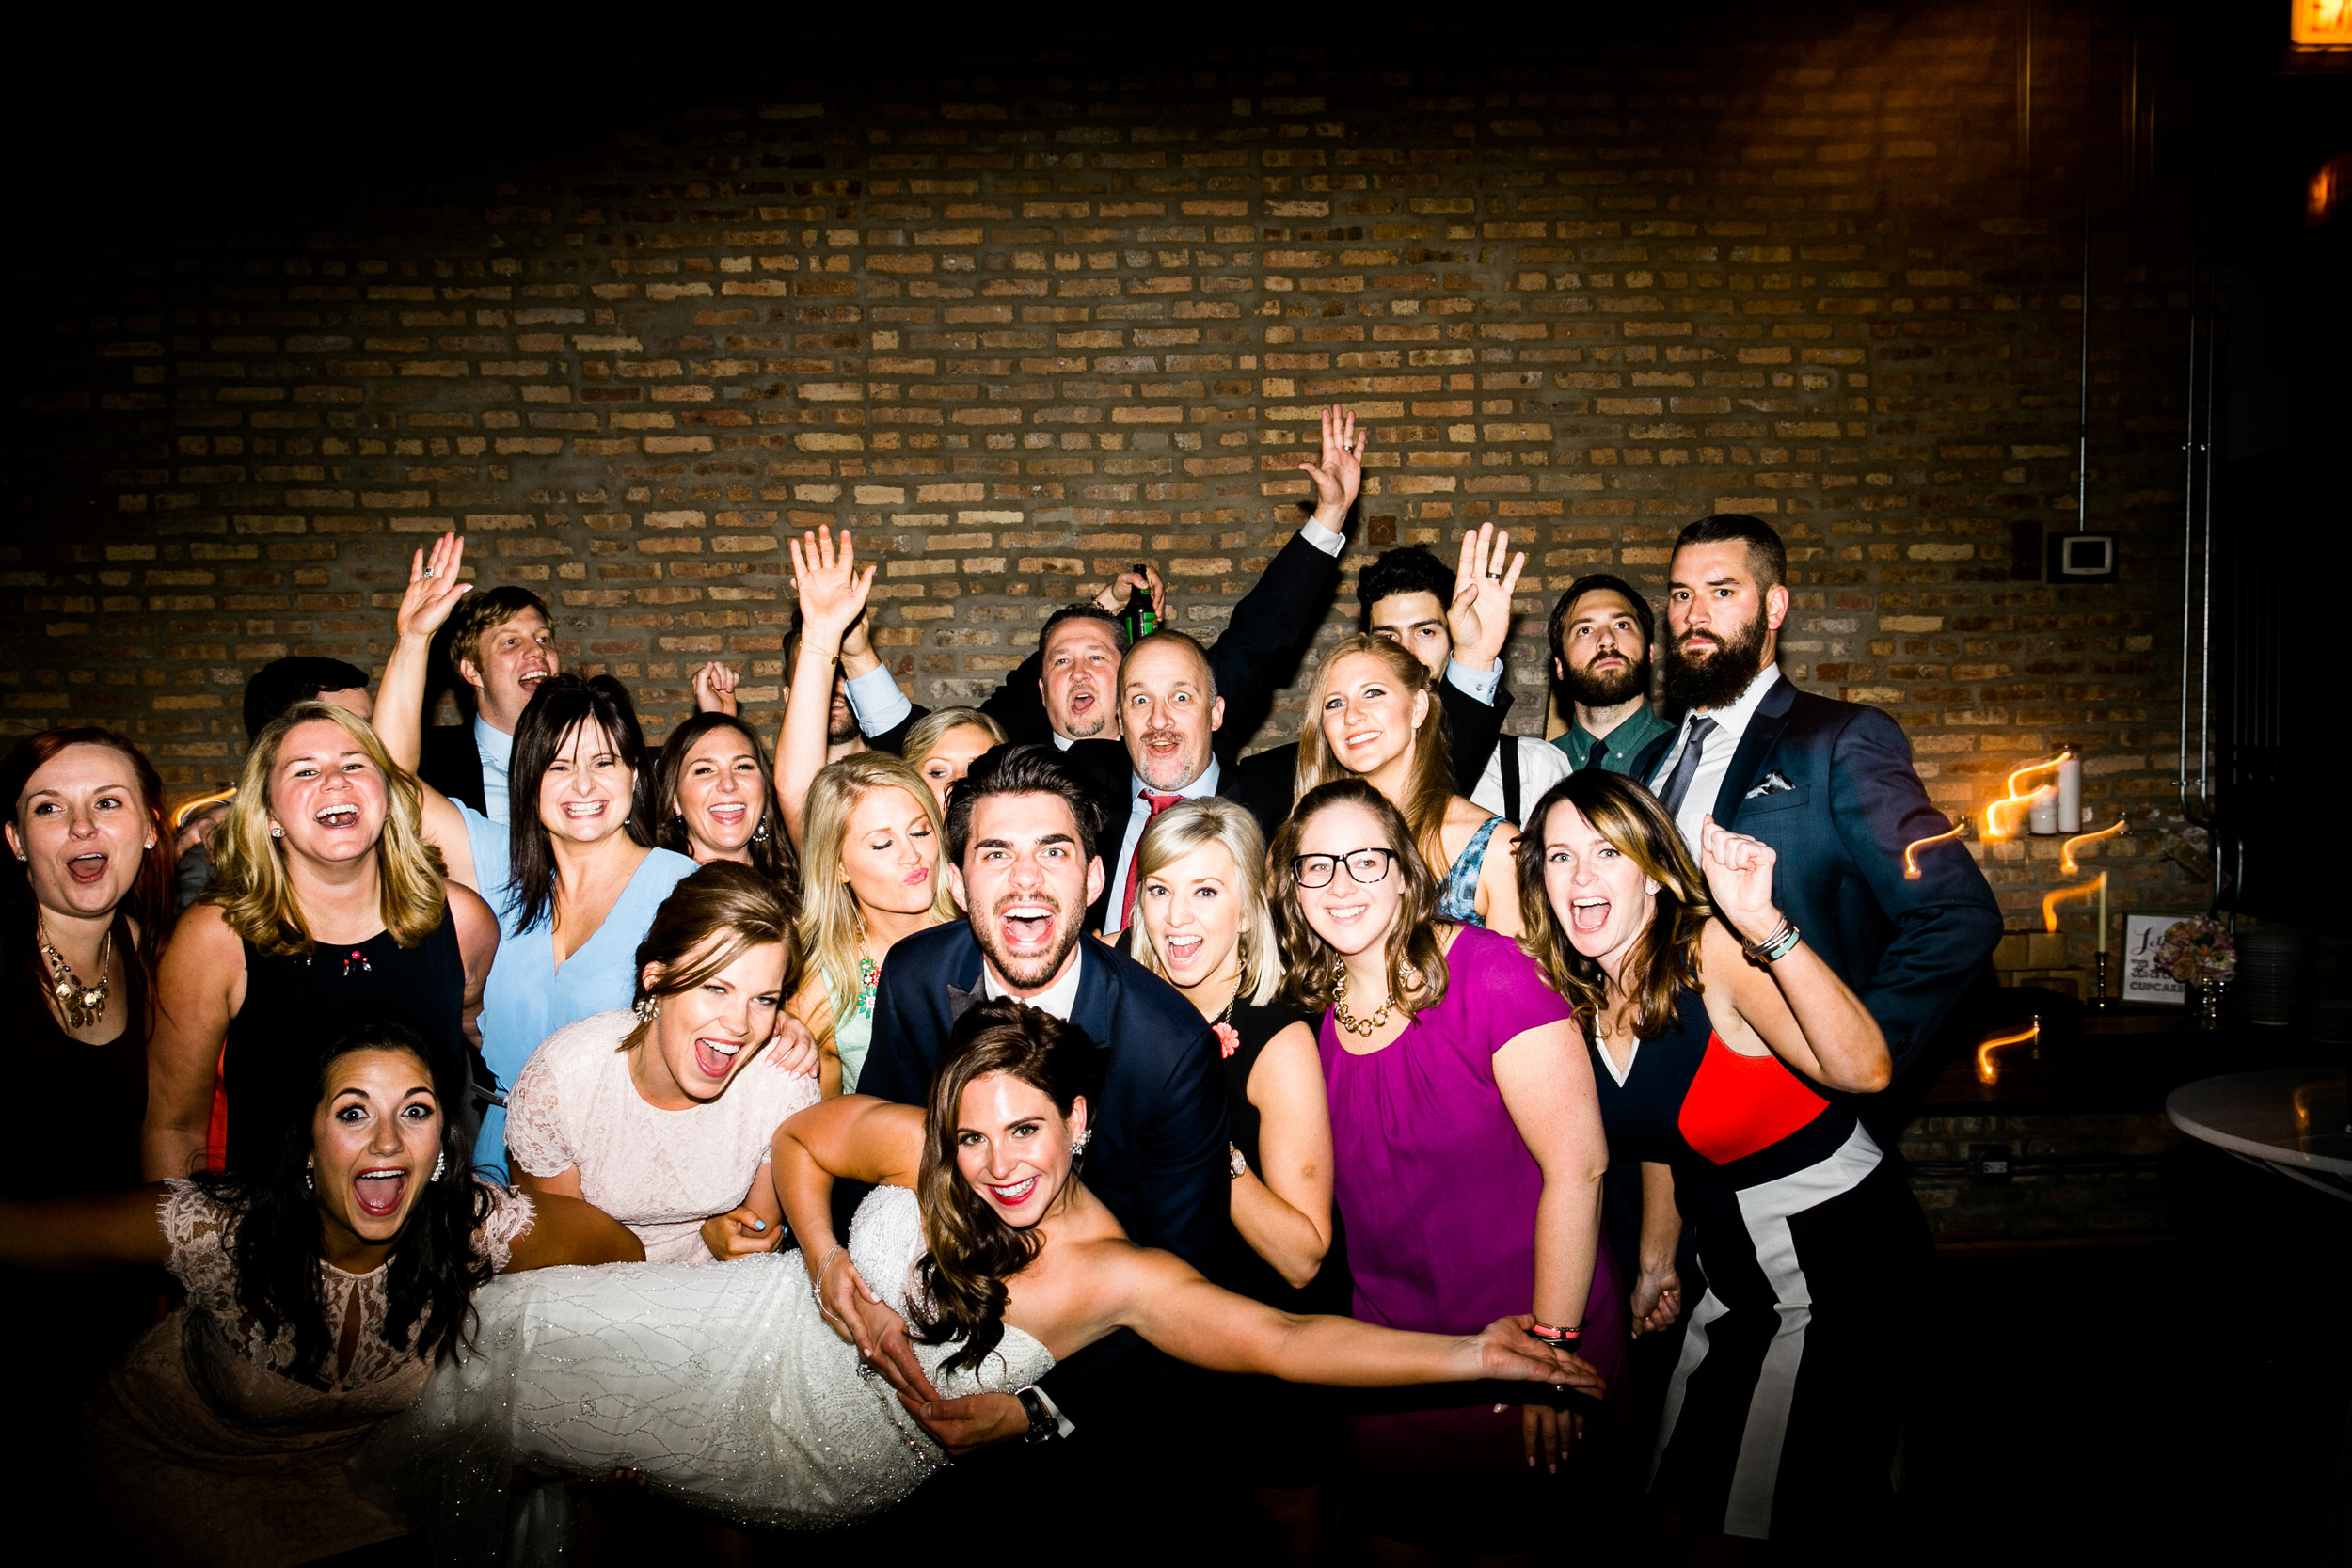 mayden_photography_weddings-154.jpg